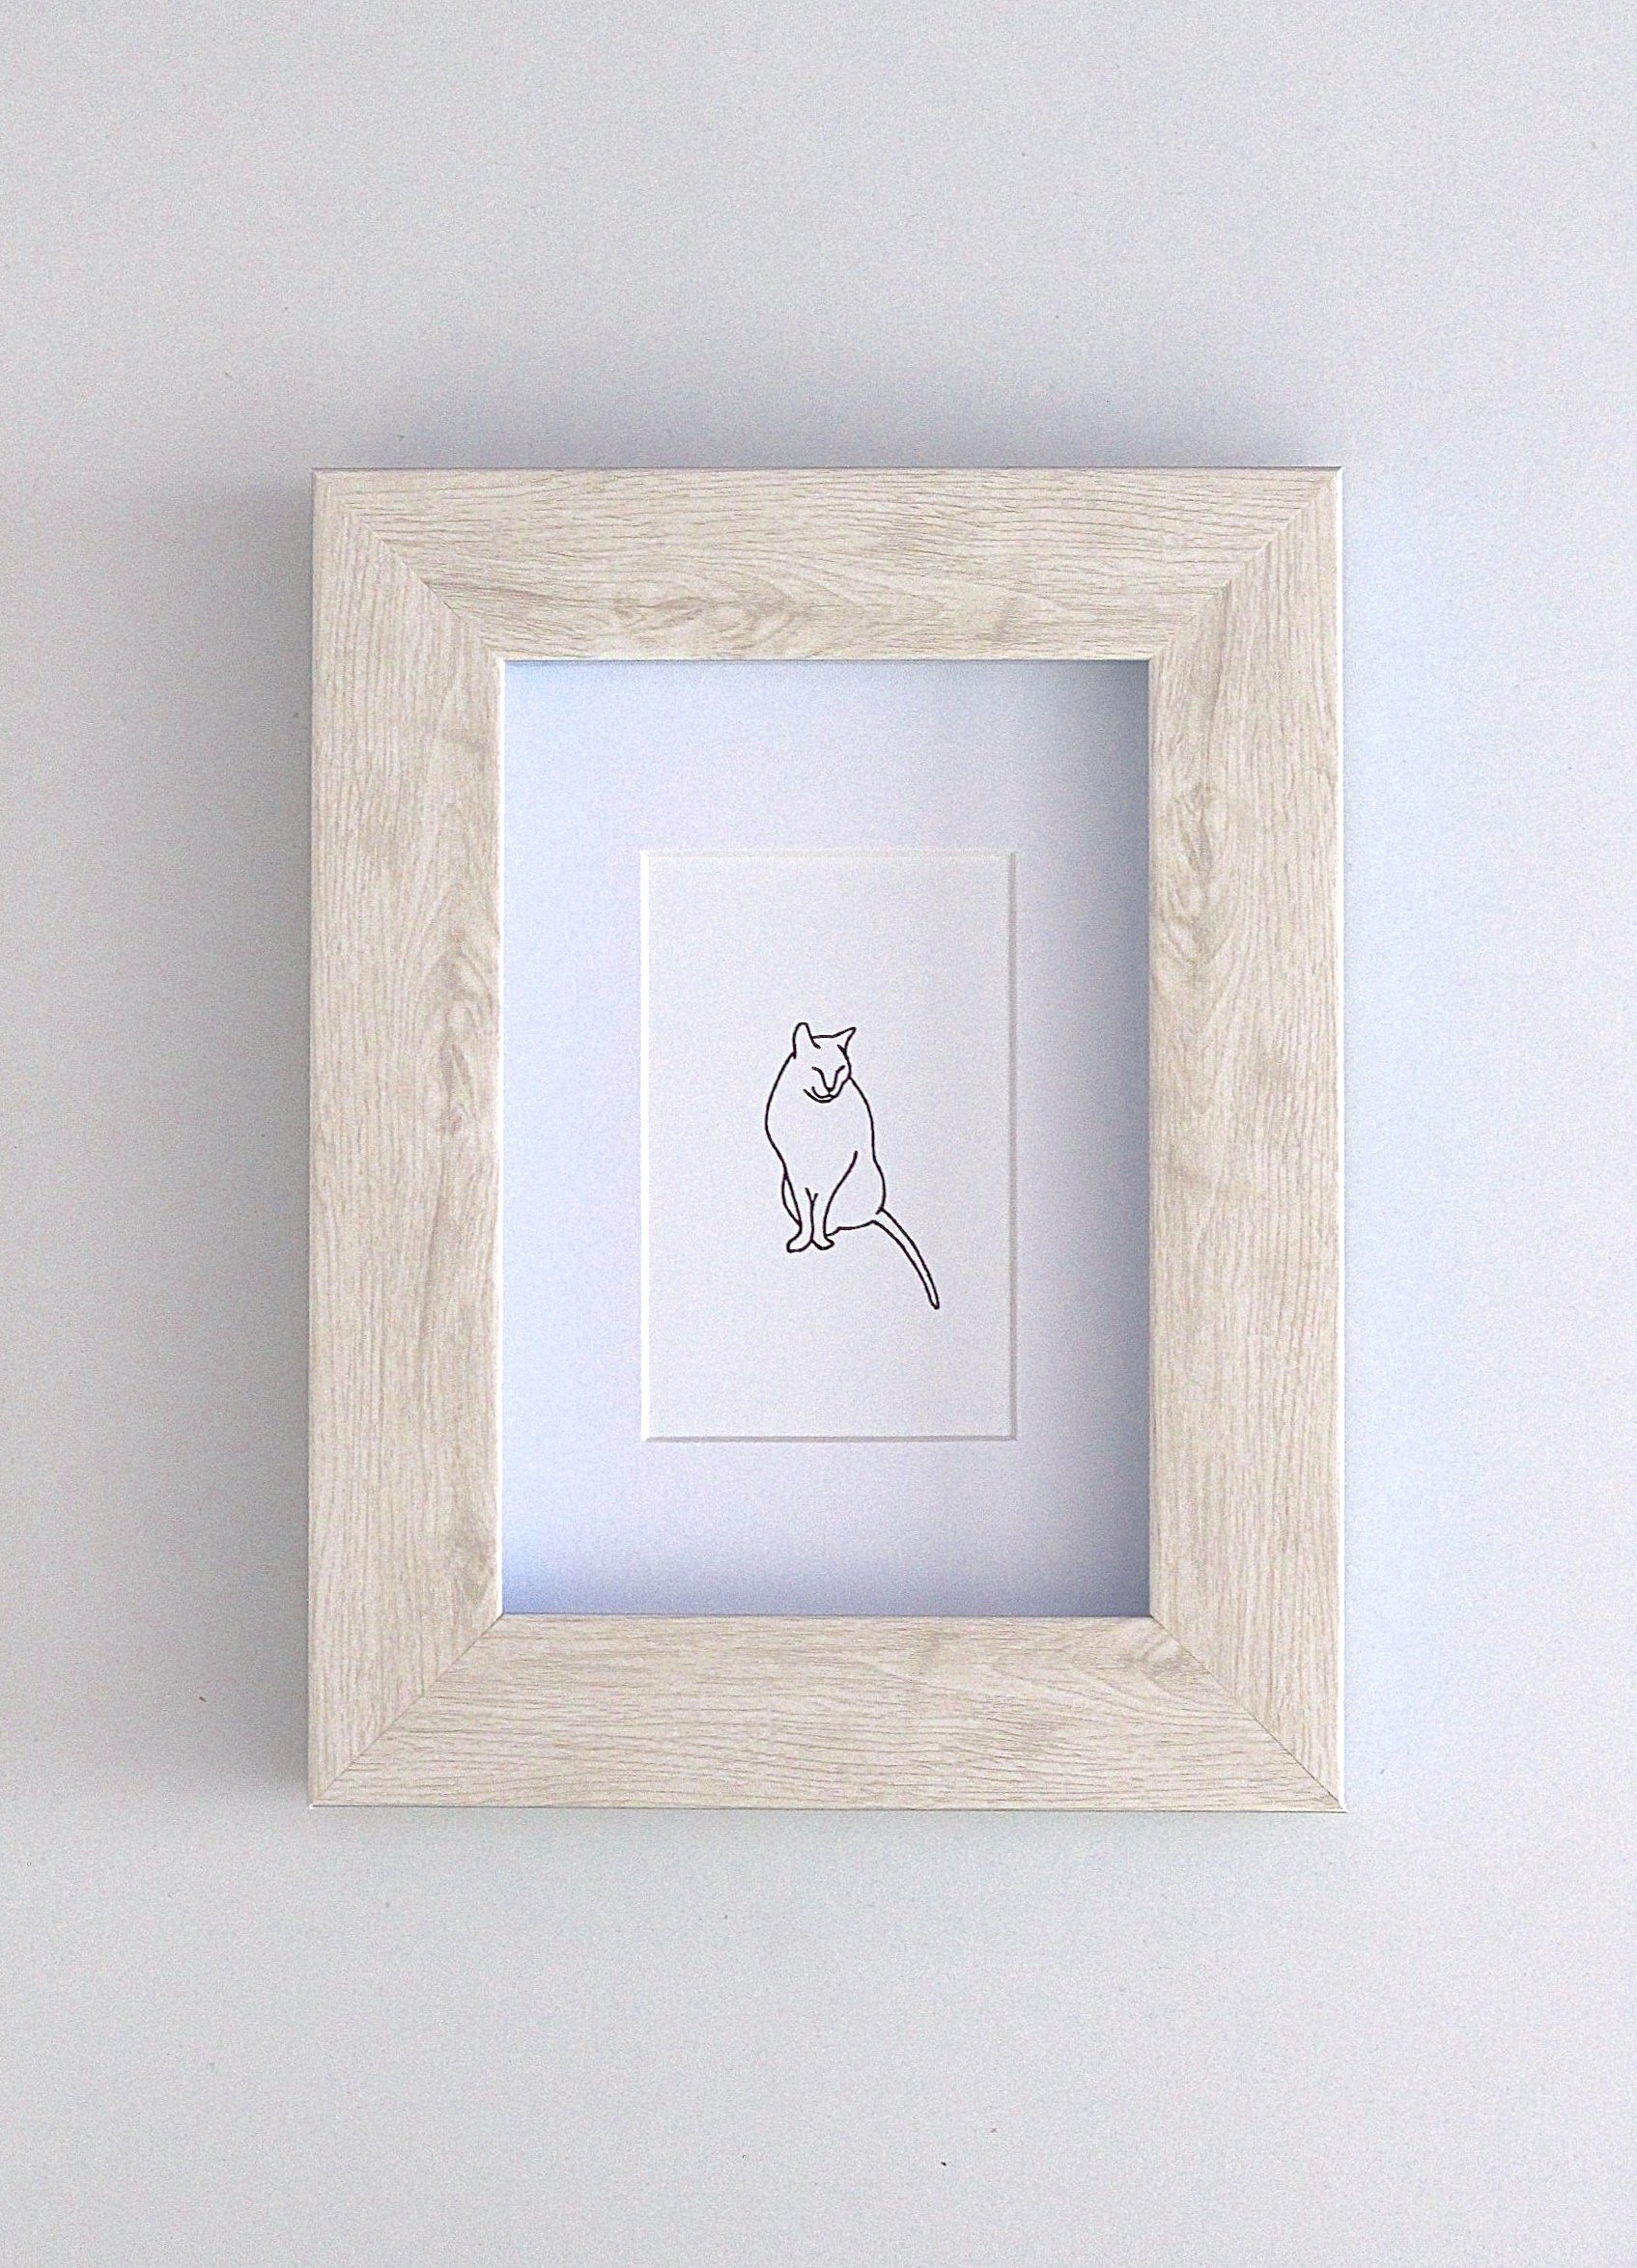 Framed Wall Art Print Gregory The Cat